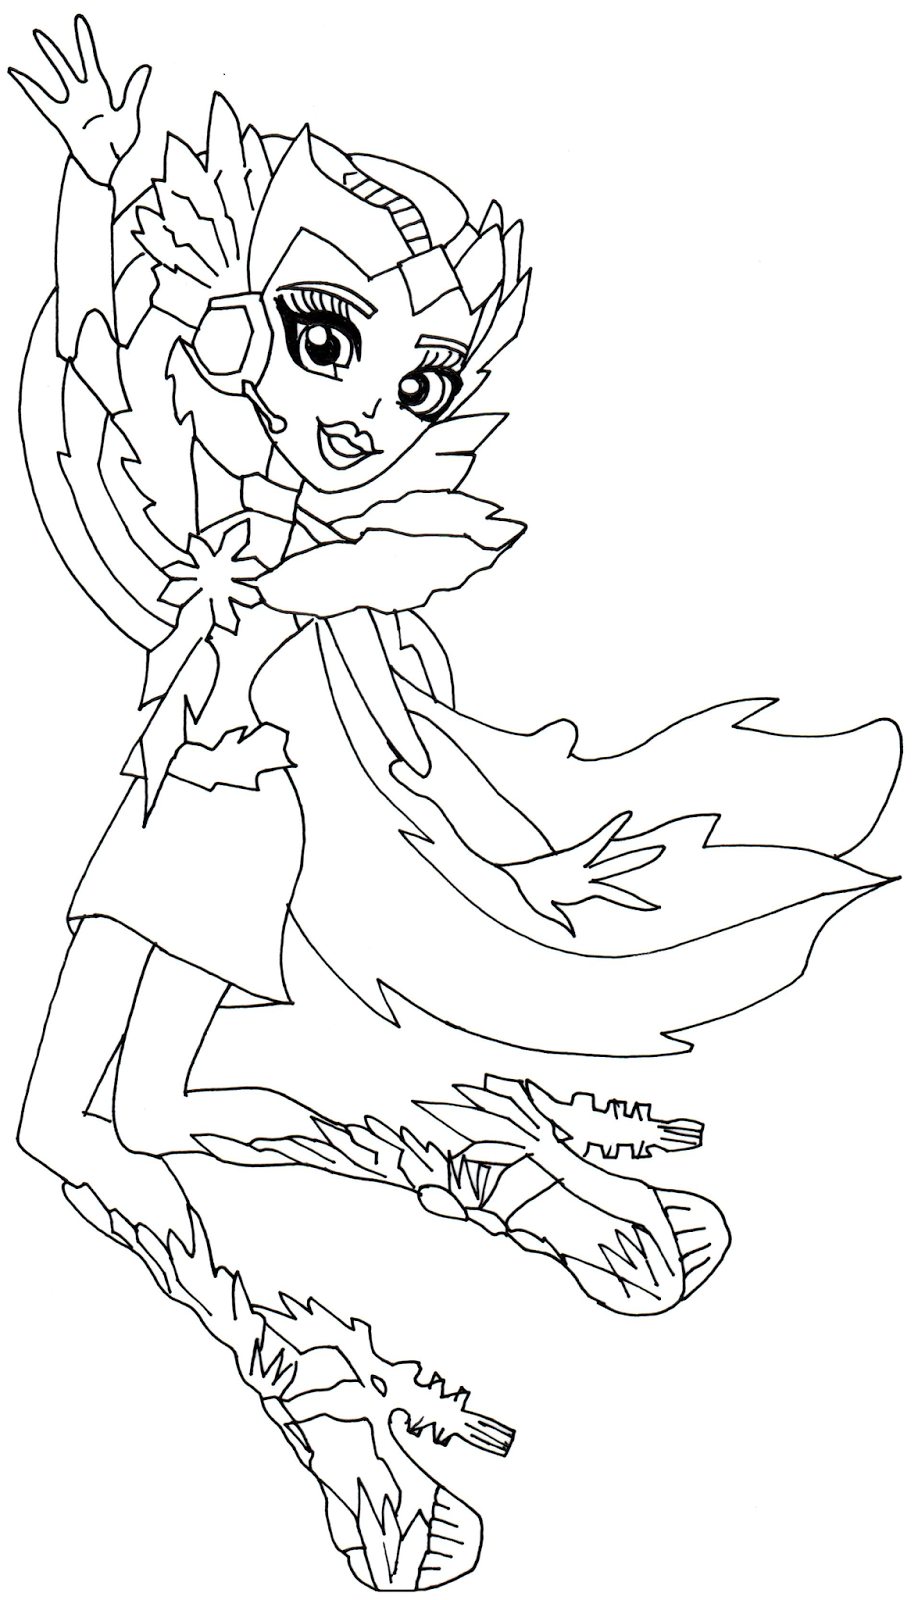 photograph about Free Printable Monster High Coloring Pages referred to as Monster Large Coloring Internet pages Printable No cost at GetDrawings